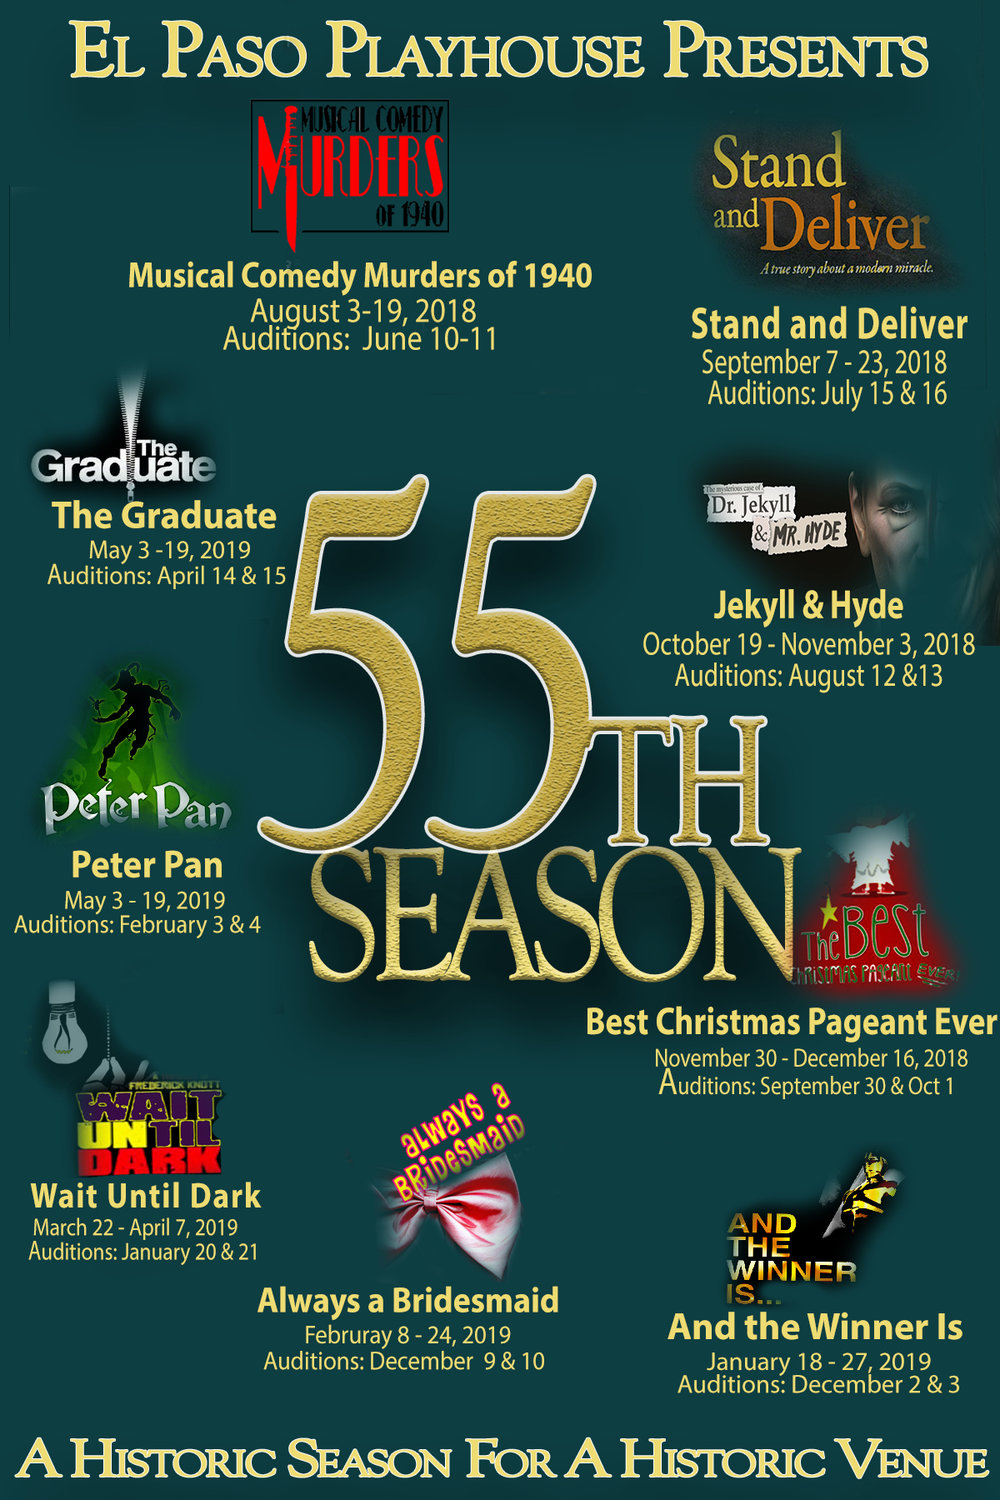 SEASON TICKETSJoin us for our 55th seasonSeason 55 Ticket Packages are on sale now! - You don't need to travel to see excellent theatre – we've got it right here. At The El Paso Playhouse, we provide big city quality entertainment with the hometown feel and price that you love.Subscribers are guaranteed seats to 9 outstanding productions with no hassles, minimal planning, and unbelievable savings. Subscribers also receive a discount on additional seats and bonus to complimentary items.